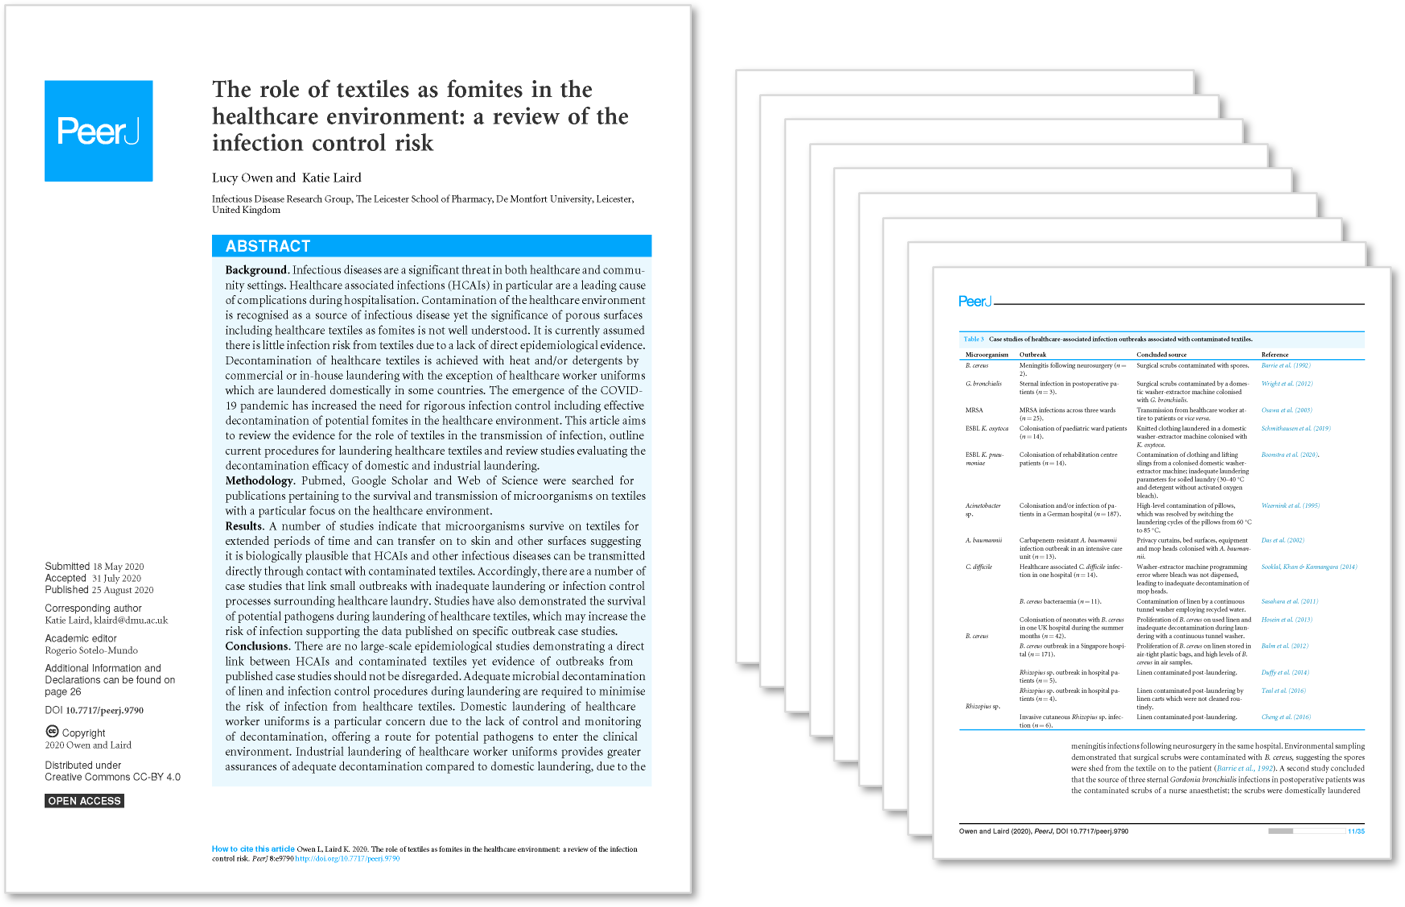 The role of textiles as fomites in the healthcare environment: a review of the infection control risk